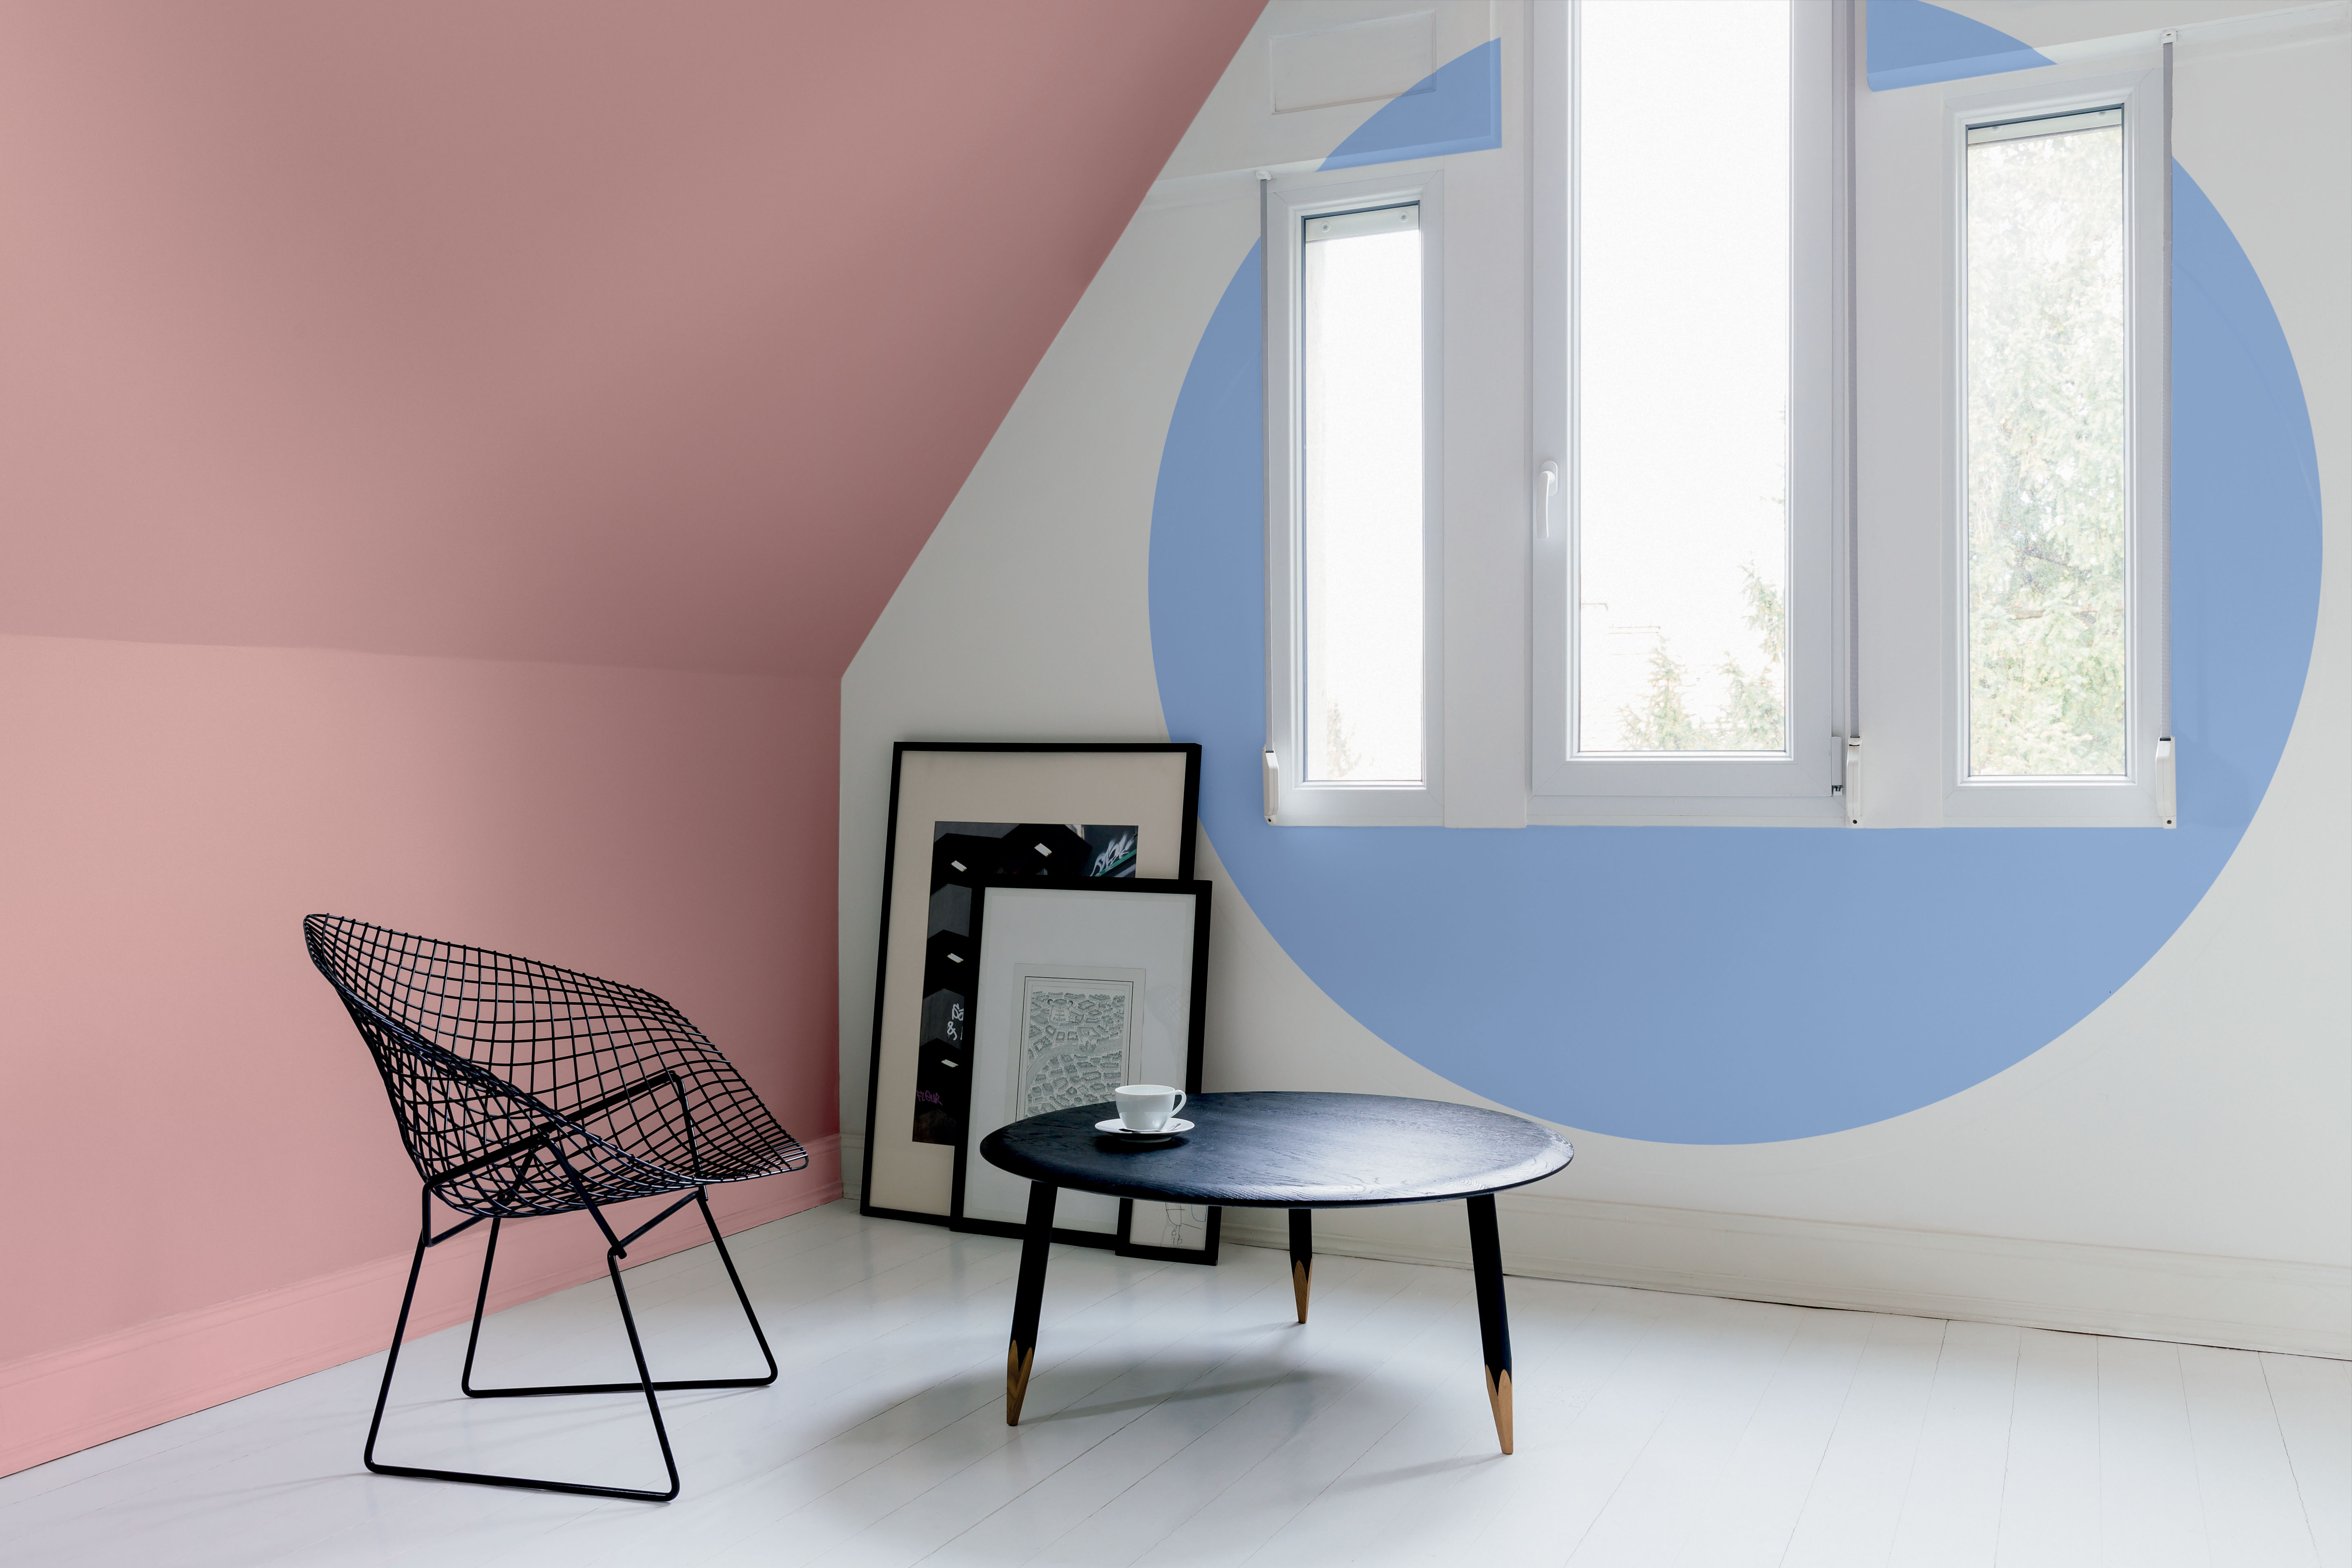 ... and Serenity are Pantone's 2016 Color of the Year – UCreative.com